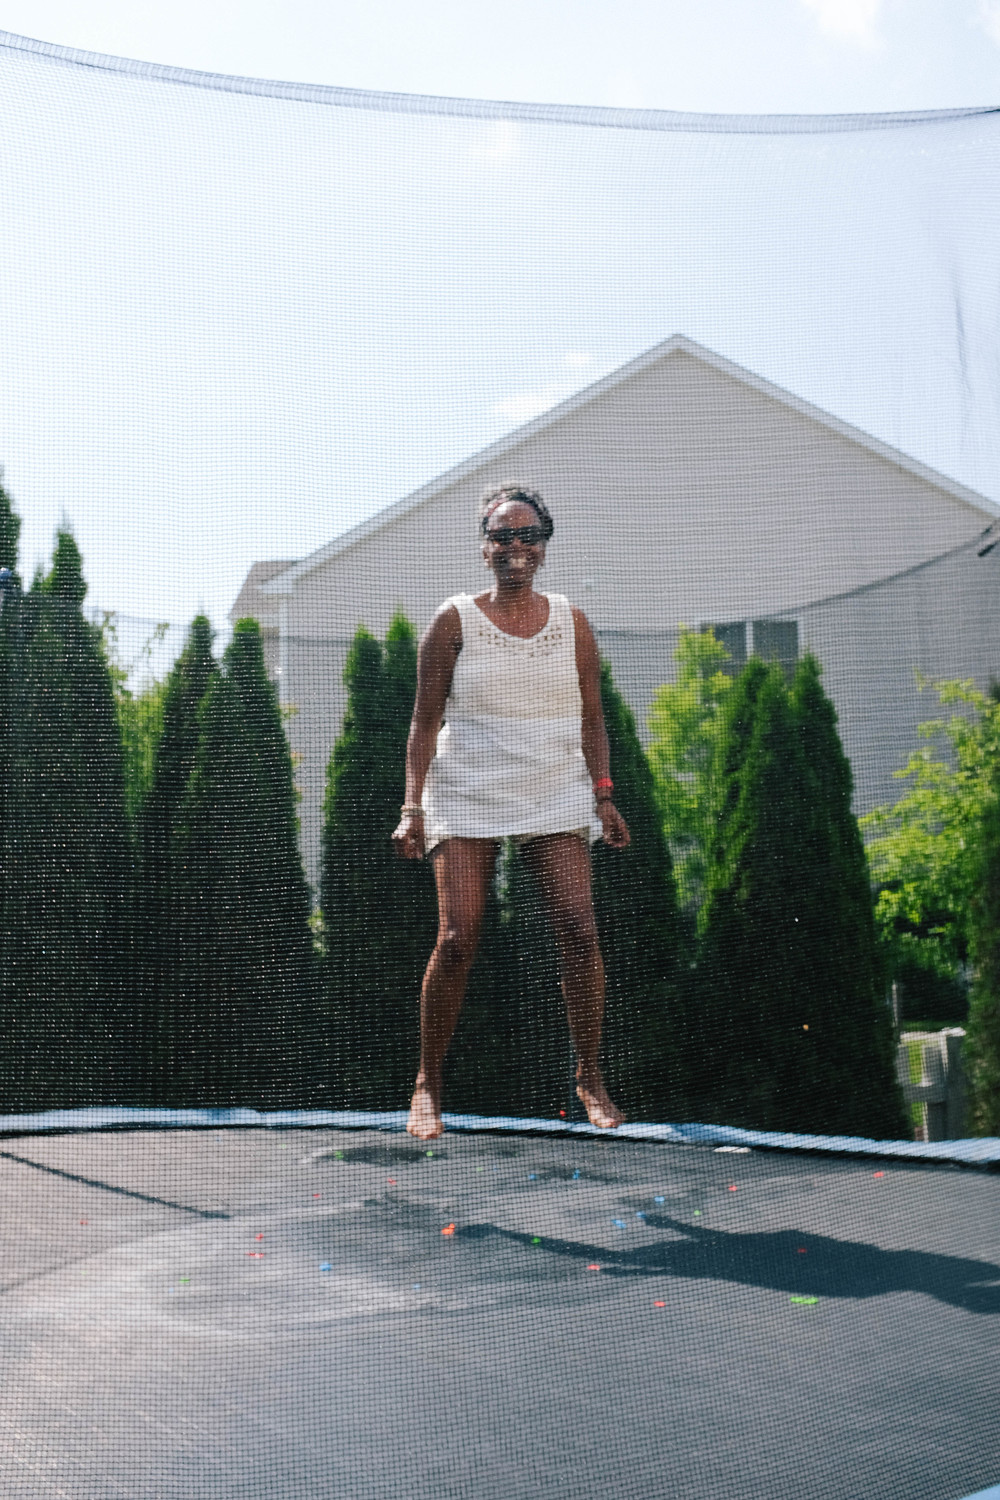 nana was killing it on the trampoline!